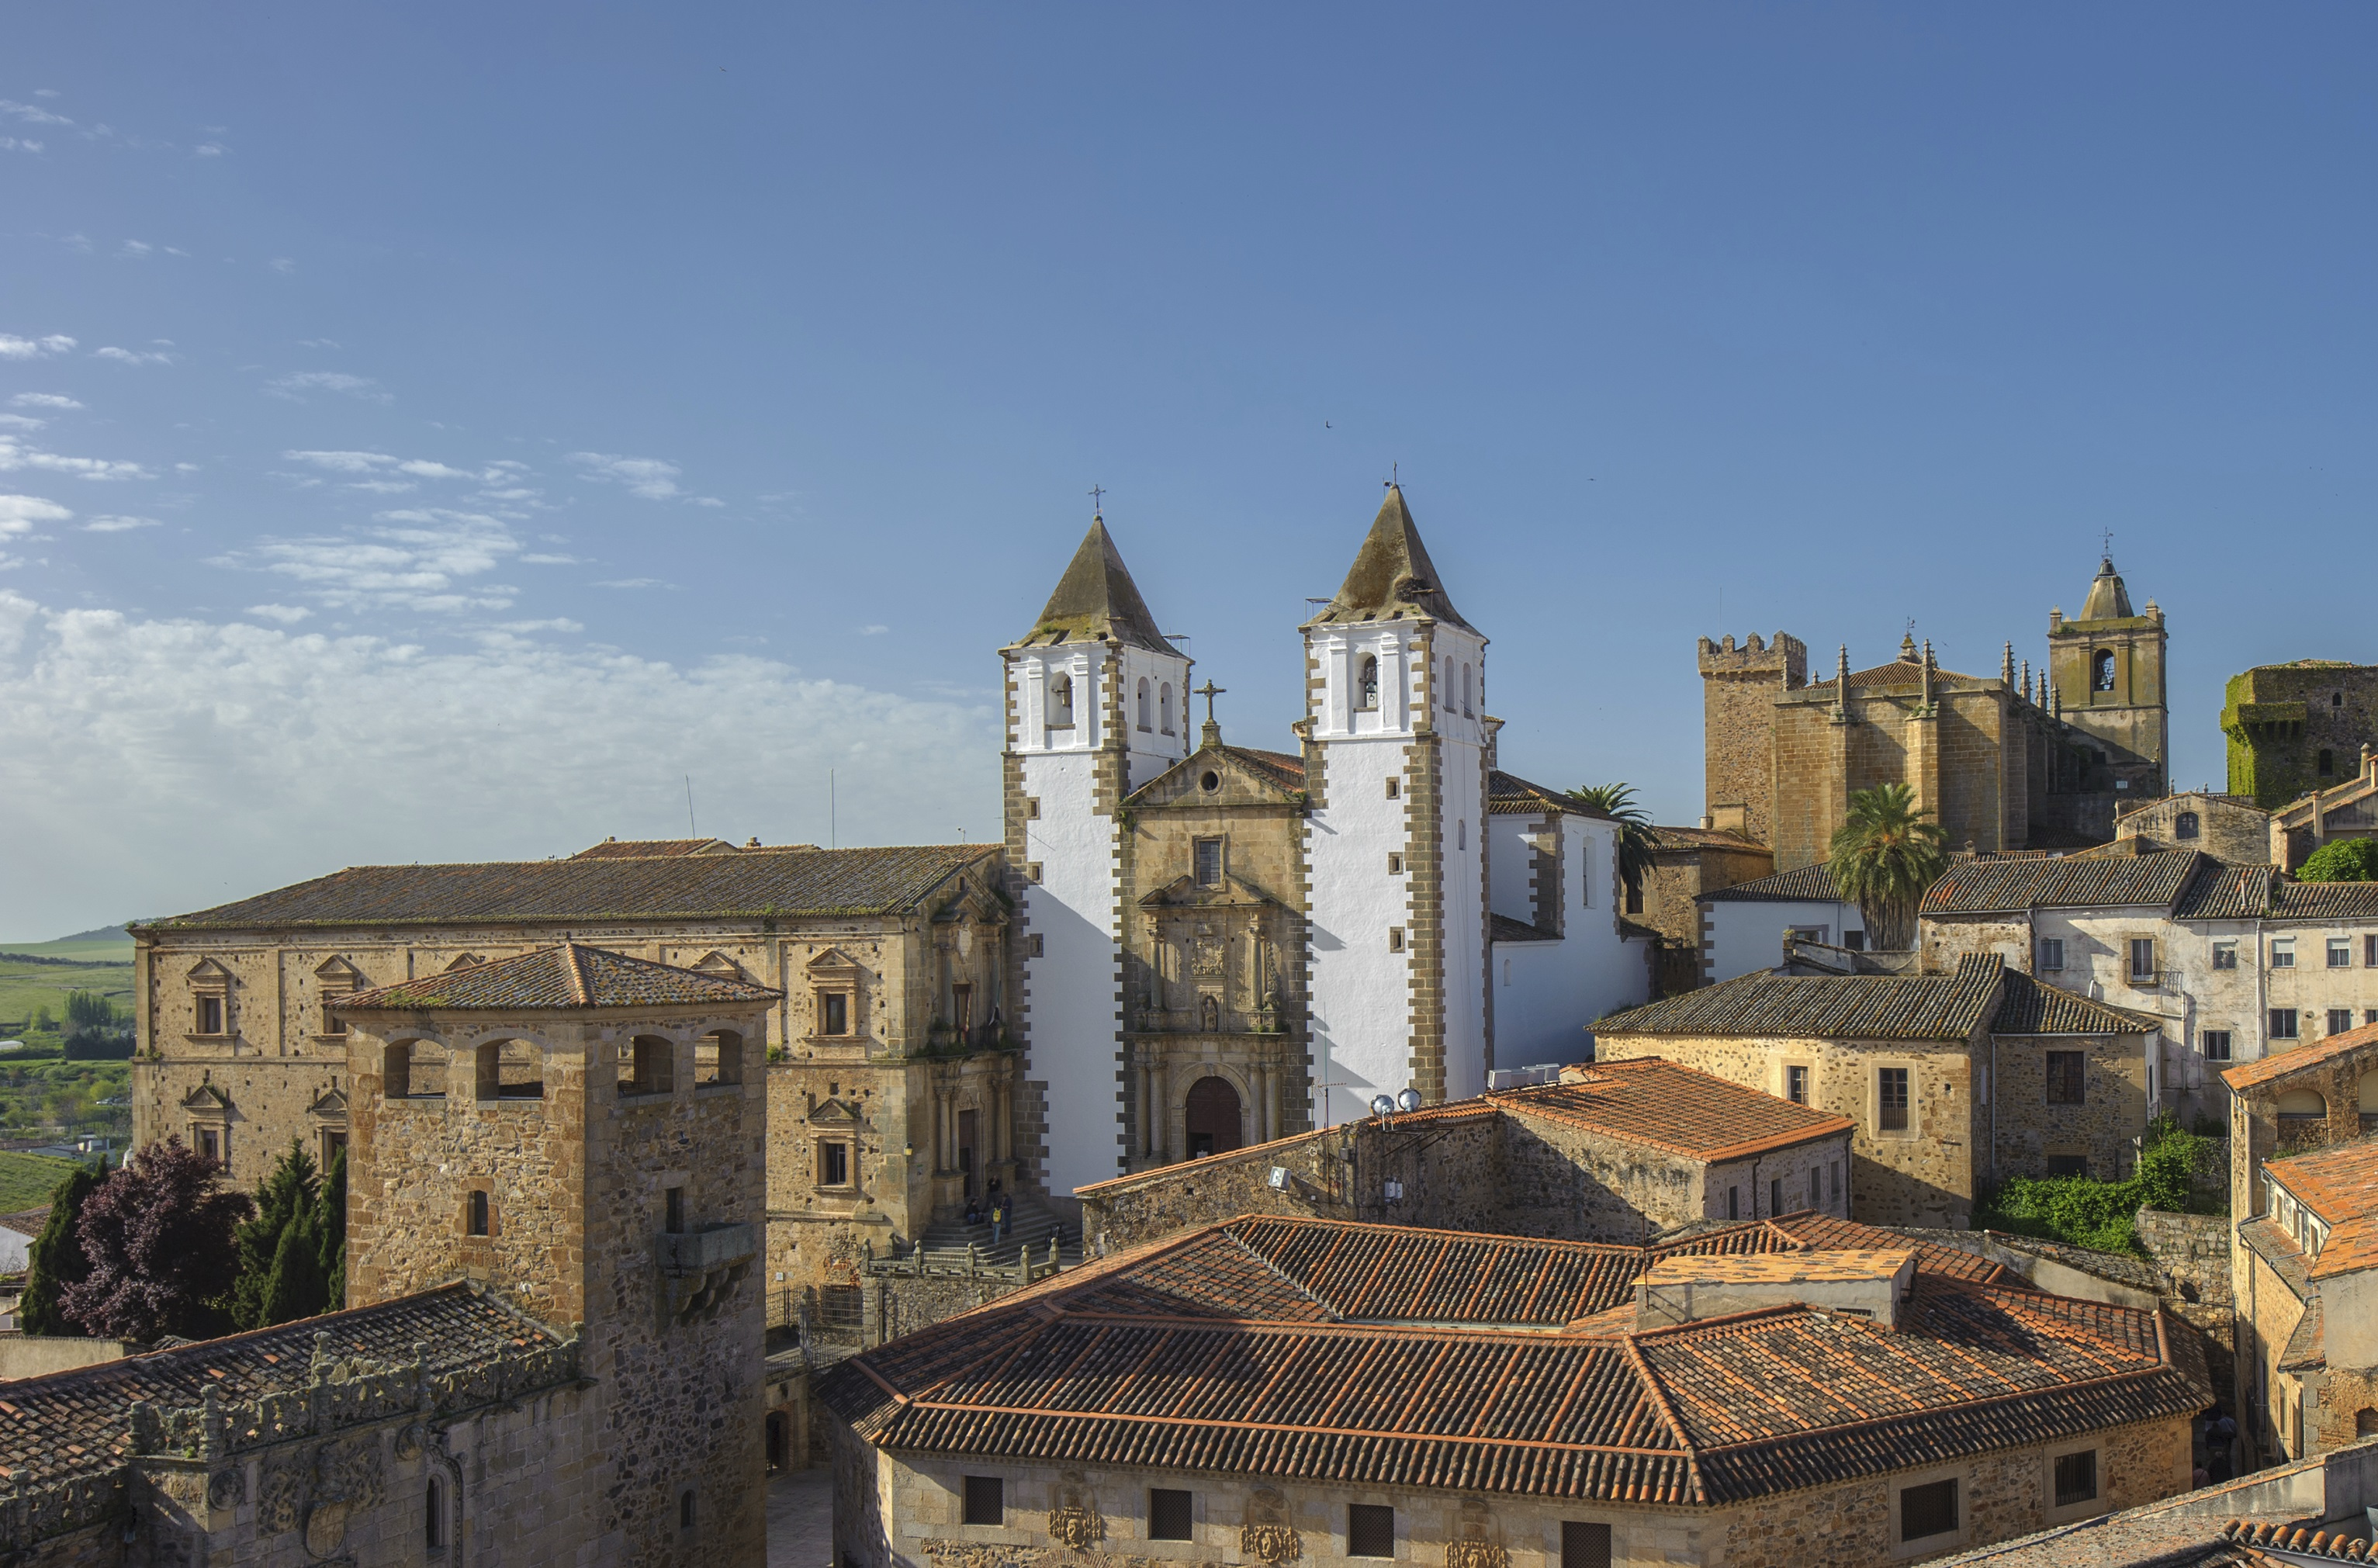 Old town of Caceras, Spain